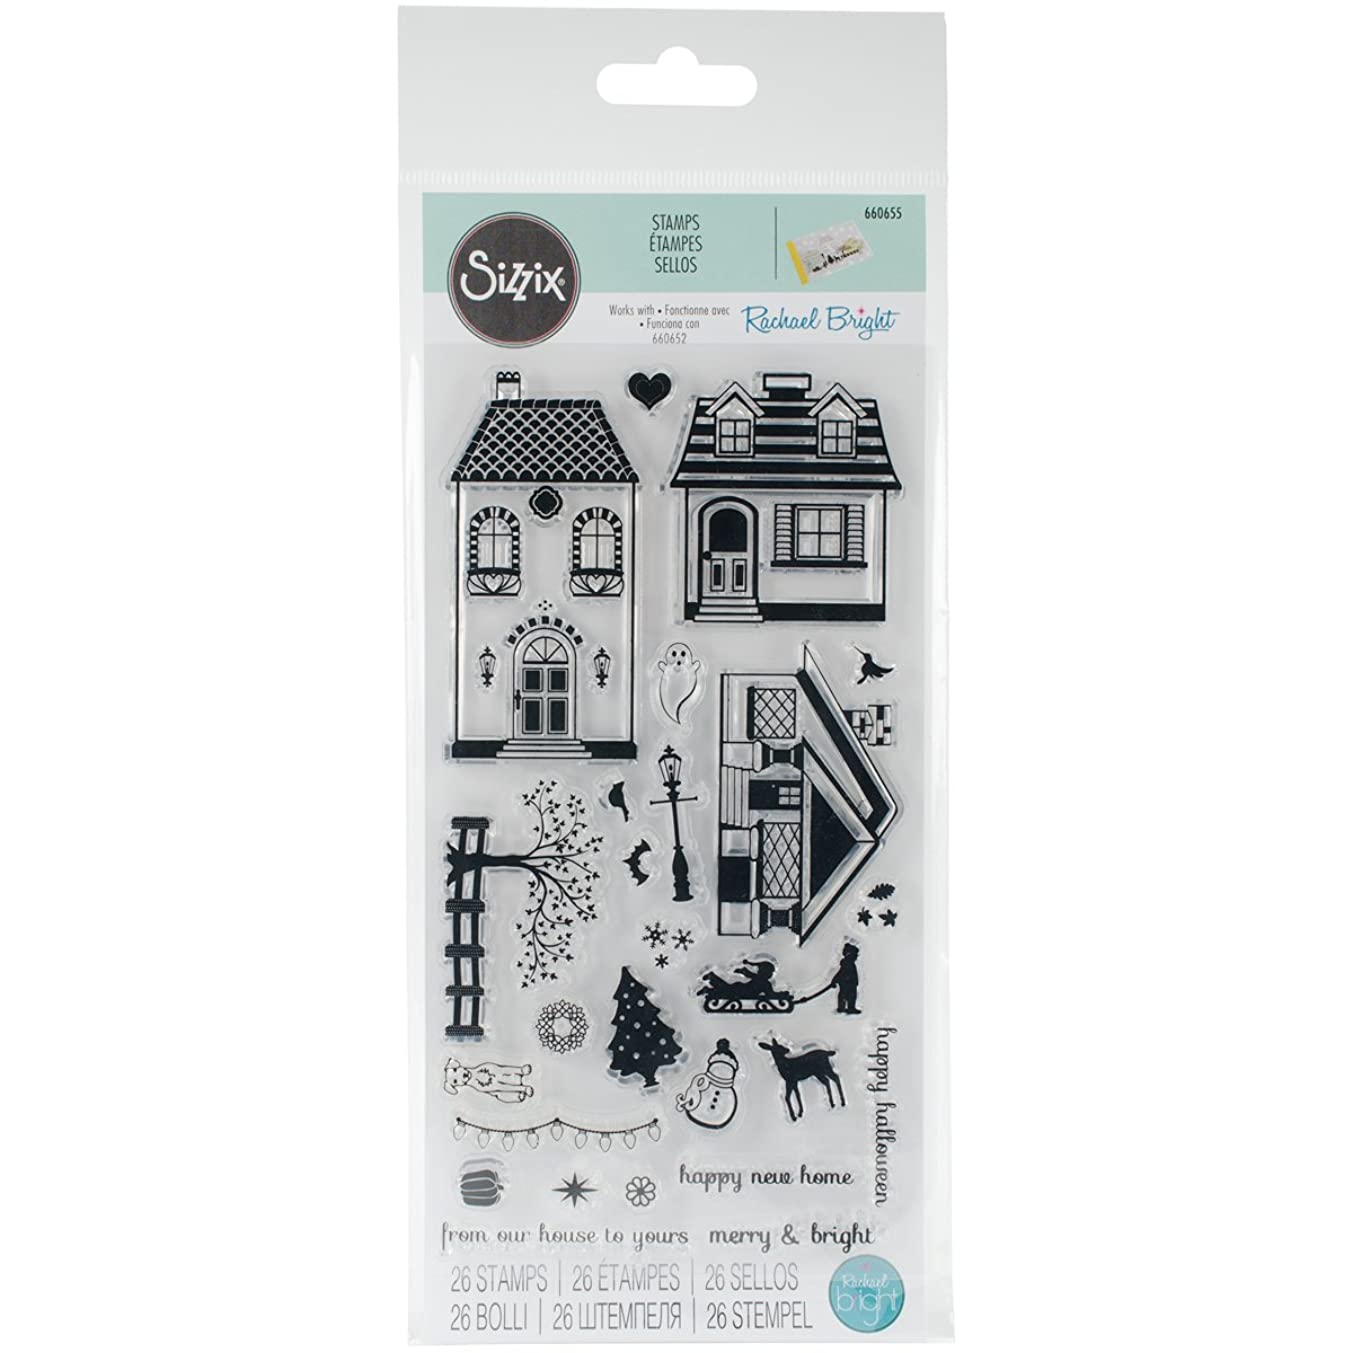 Sizzix Happy Home Clear Stamps by Rachael Bright,